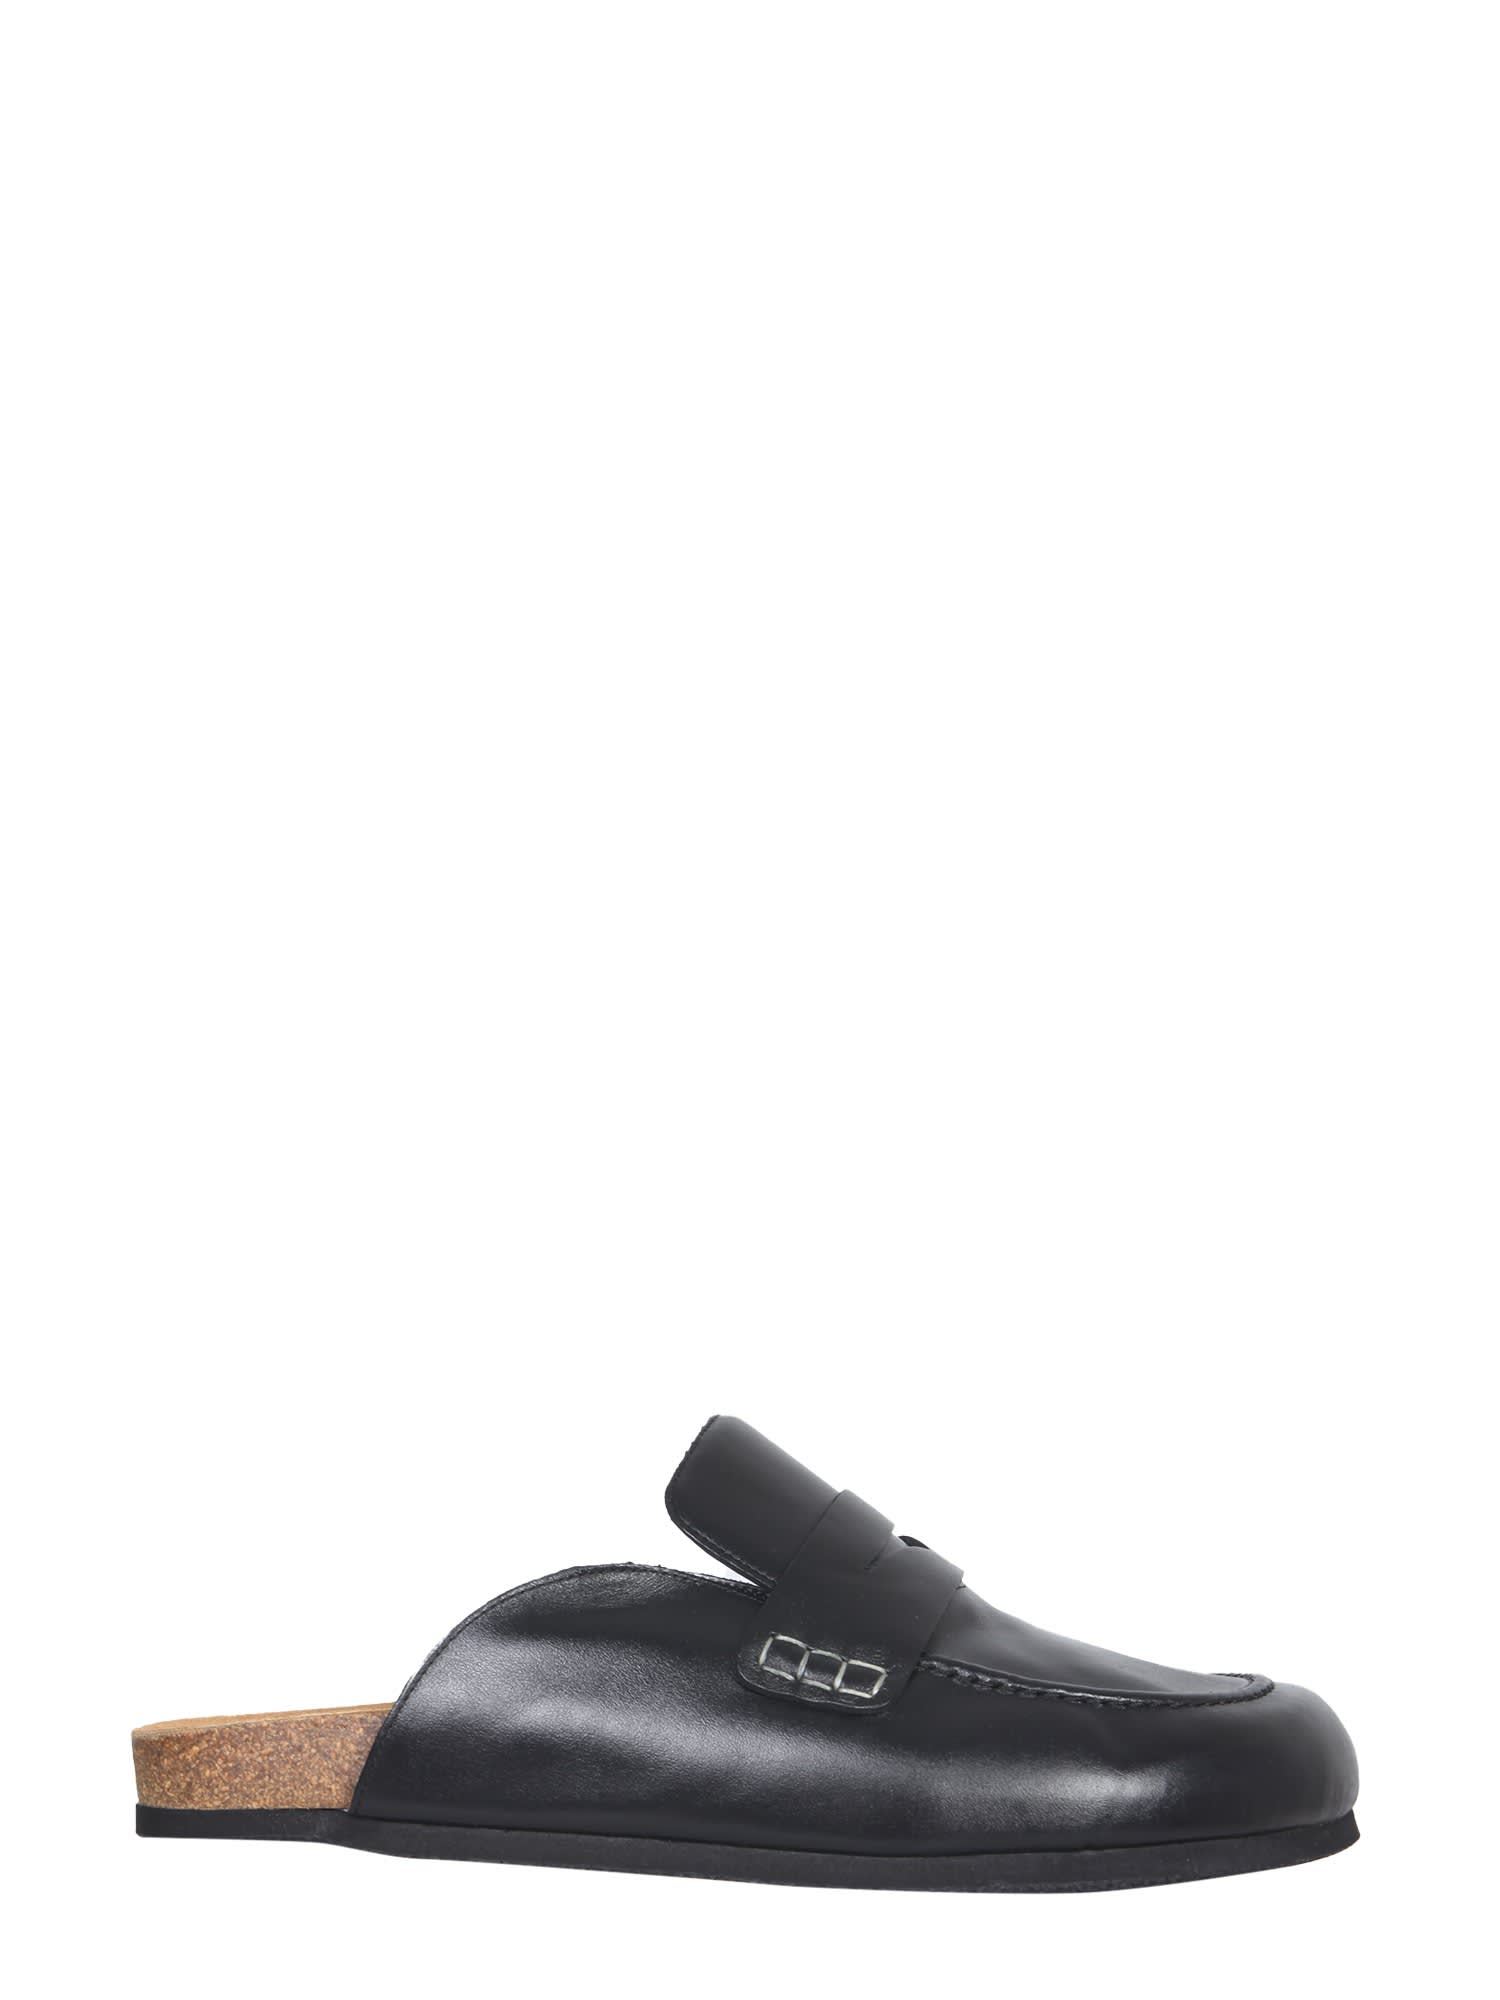 J.W. Anderson Leather Mules